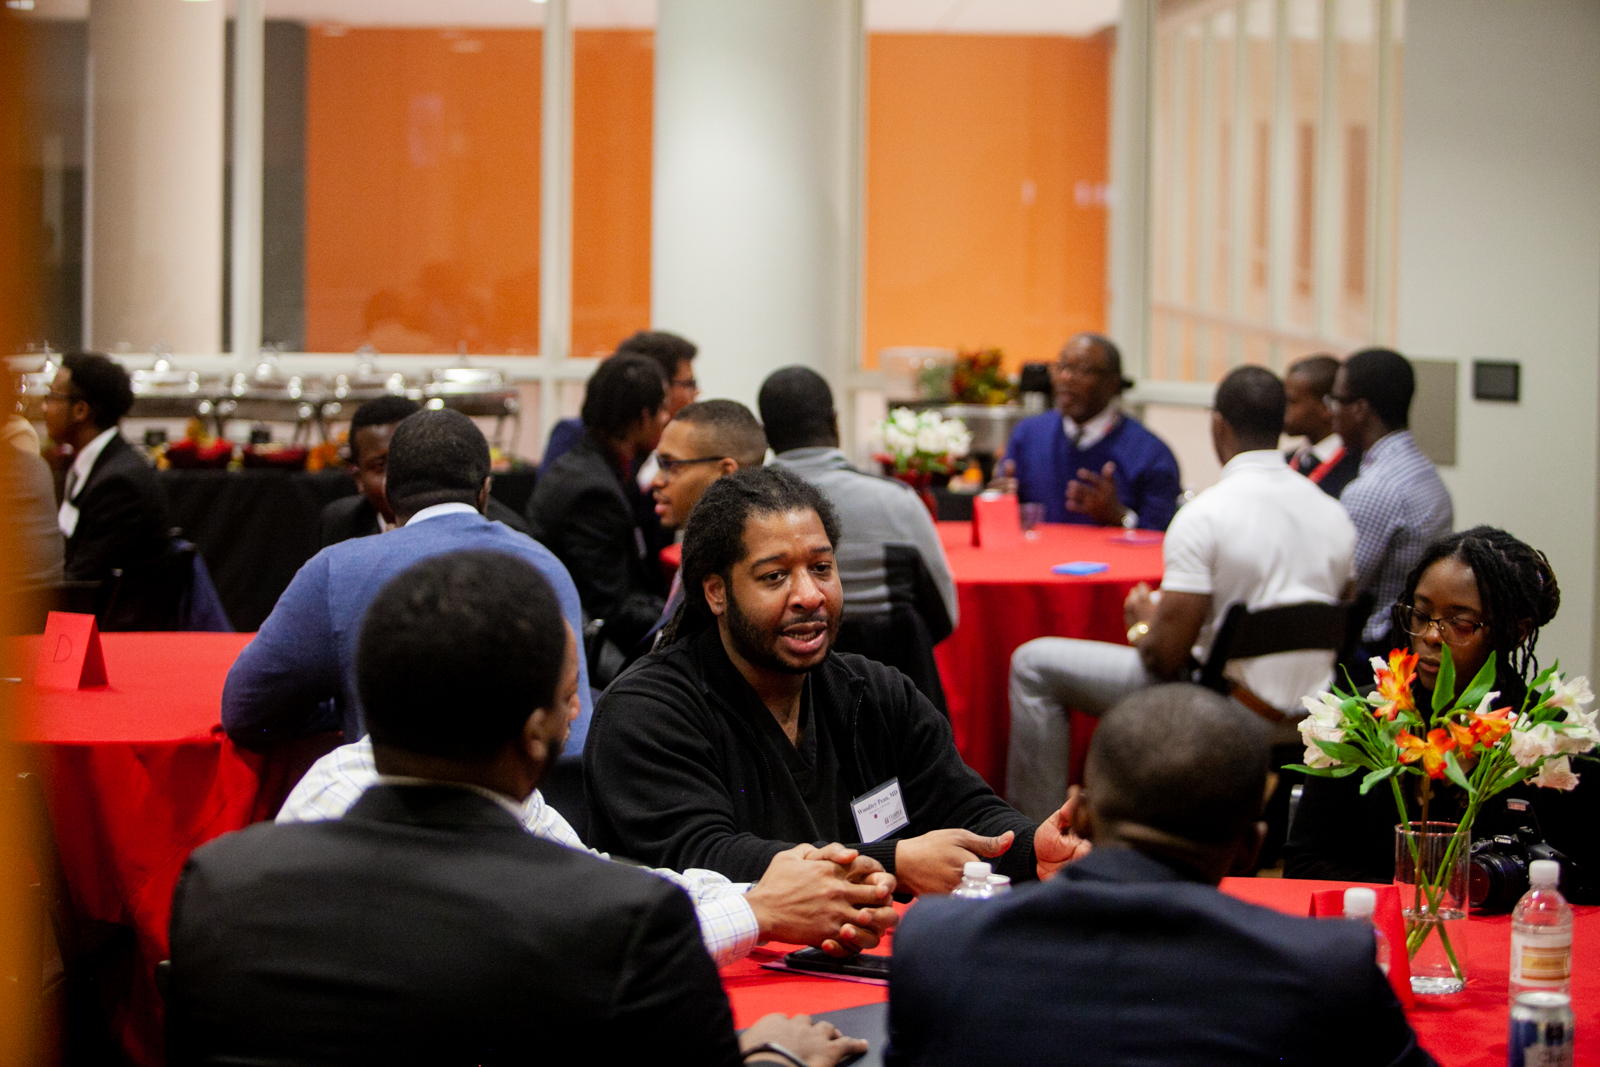 Temple brings black men in medicine together to boost doctors of